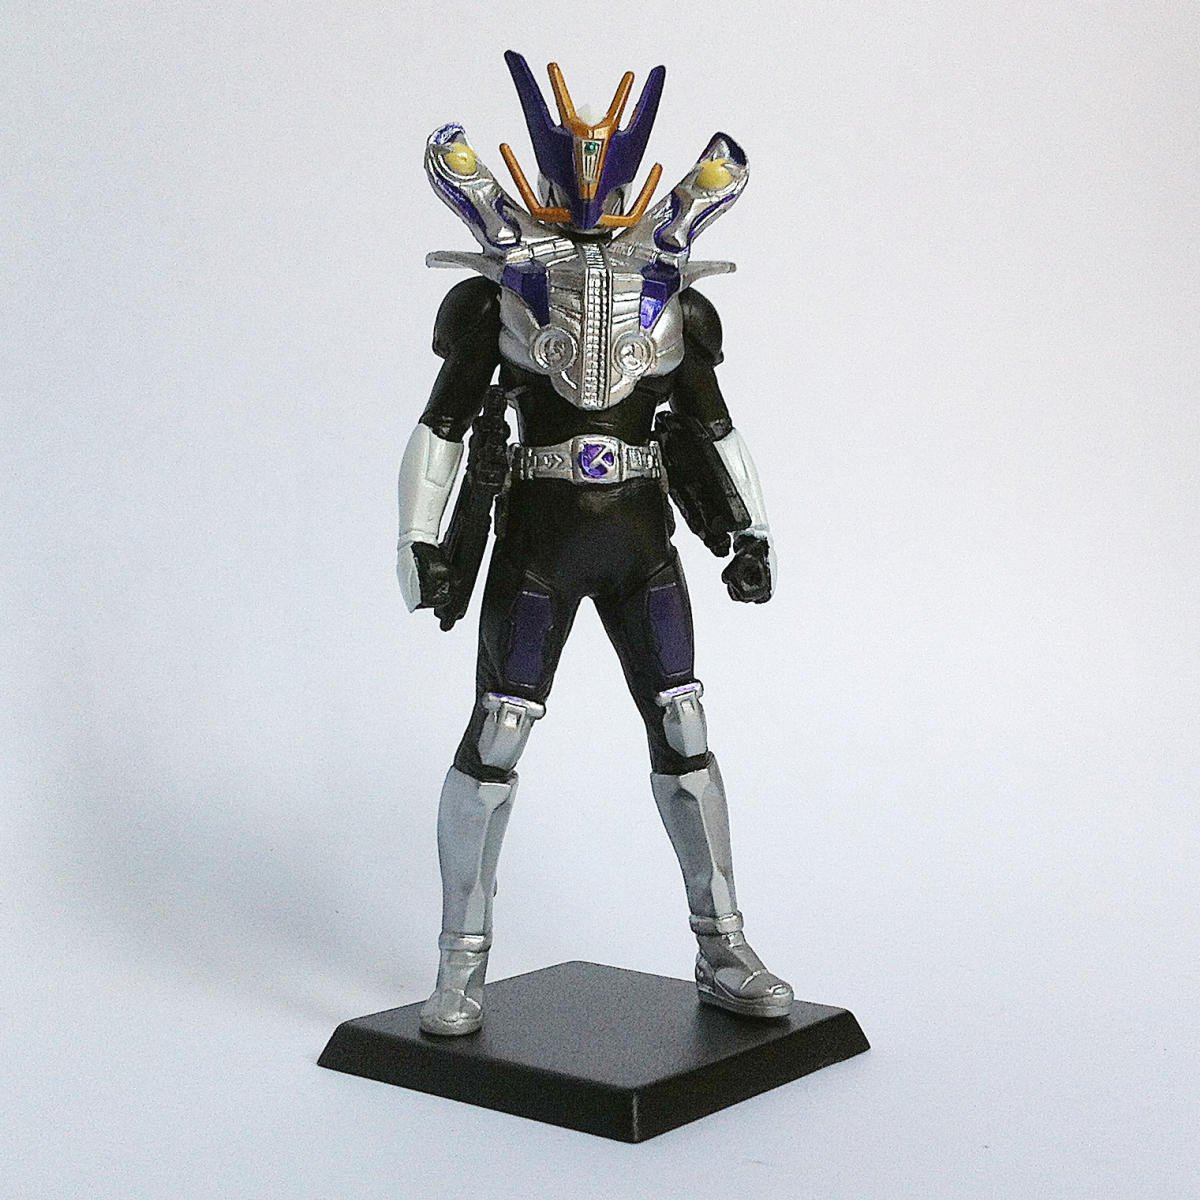 Kamen Rider Den�O Gun Form from HG CORE Kamen Rider by Bandai